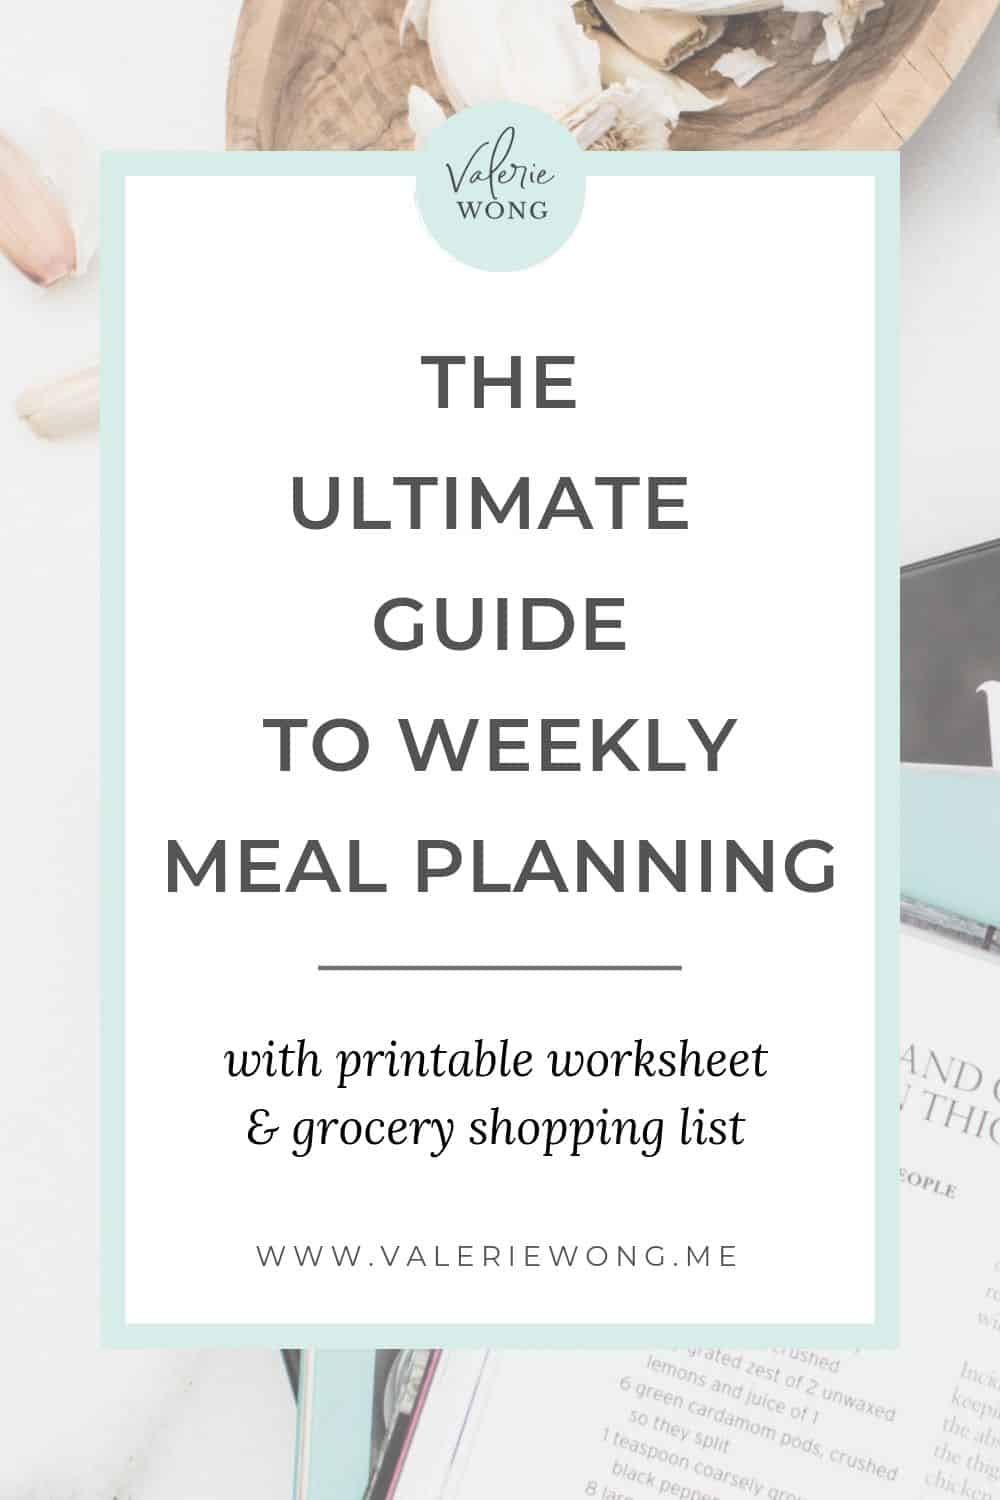 The Ultimate Guide to Weekly Meal Planning | If you're a beginner to meal planning or you've ever struggled to eat clean for the whole week, this post is for you! This step-by-step guide will make it easy for you to plan a week's worth of clean meals and nourish your body everyday. Plus there are meal prep tips and a free printable meal planning sheet + grocery list to save you a ton of time! | Valerie Wong Wellness #valeriewong #mealplanning #mealprep #cleaneating #healthyeating